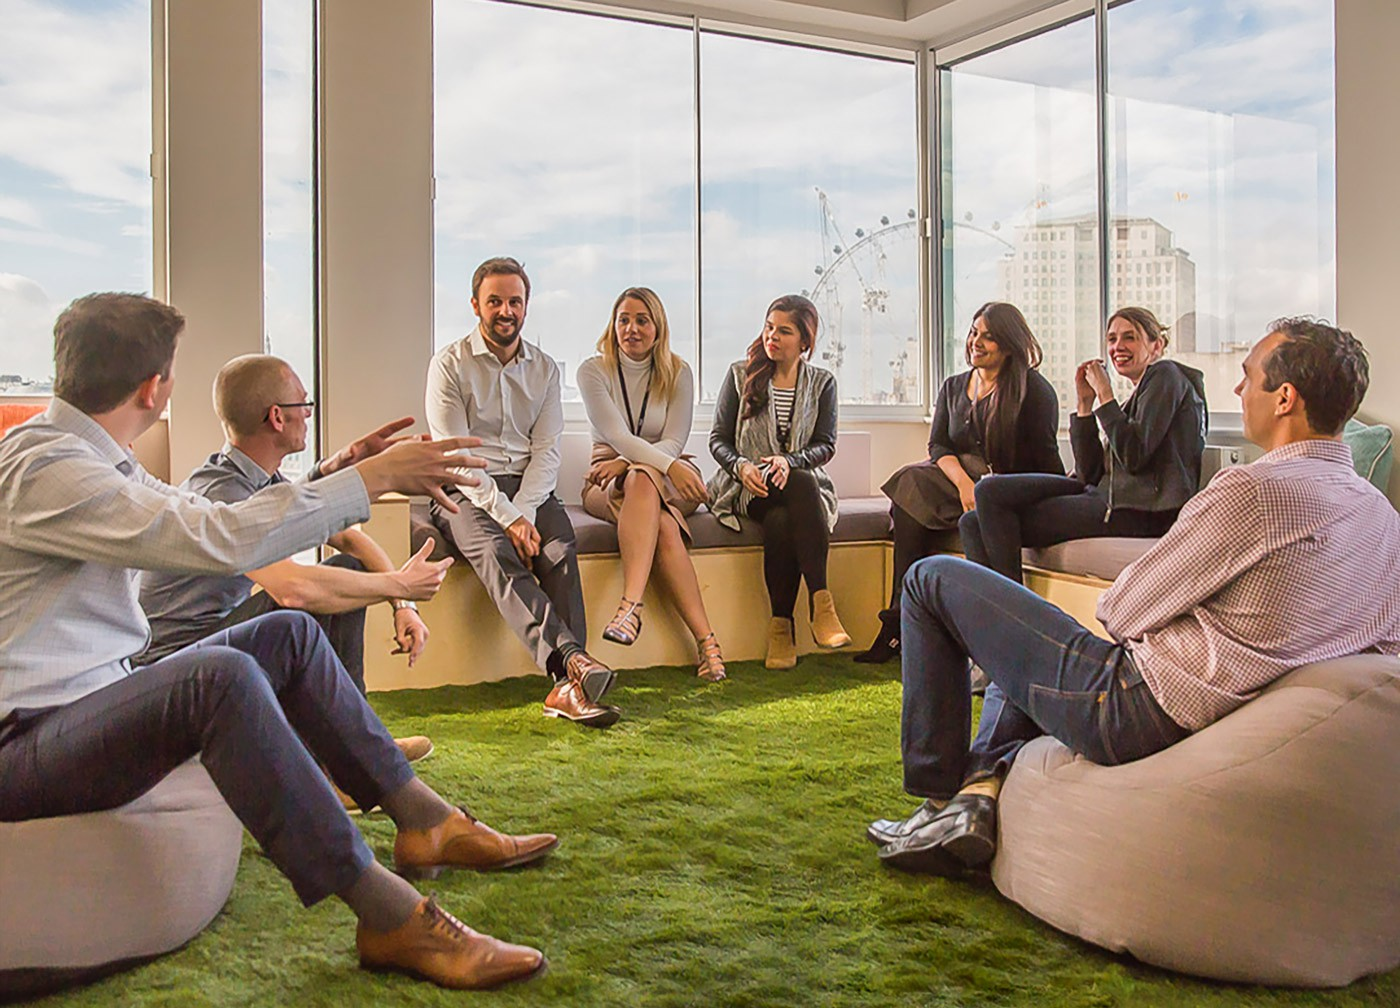 InfoTrack team using the breakout area garden design for a team meeting sitting on the benches and pouffes with a window view overlooking the London Eye.